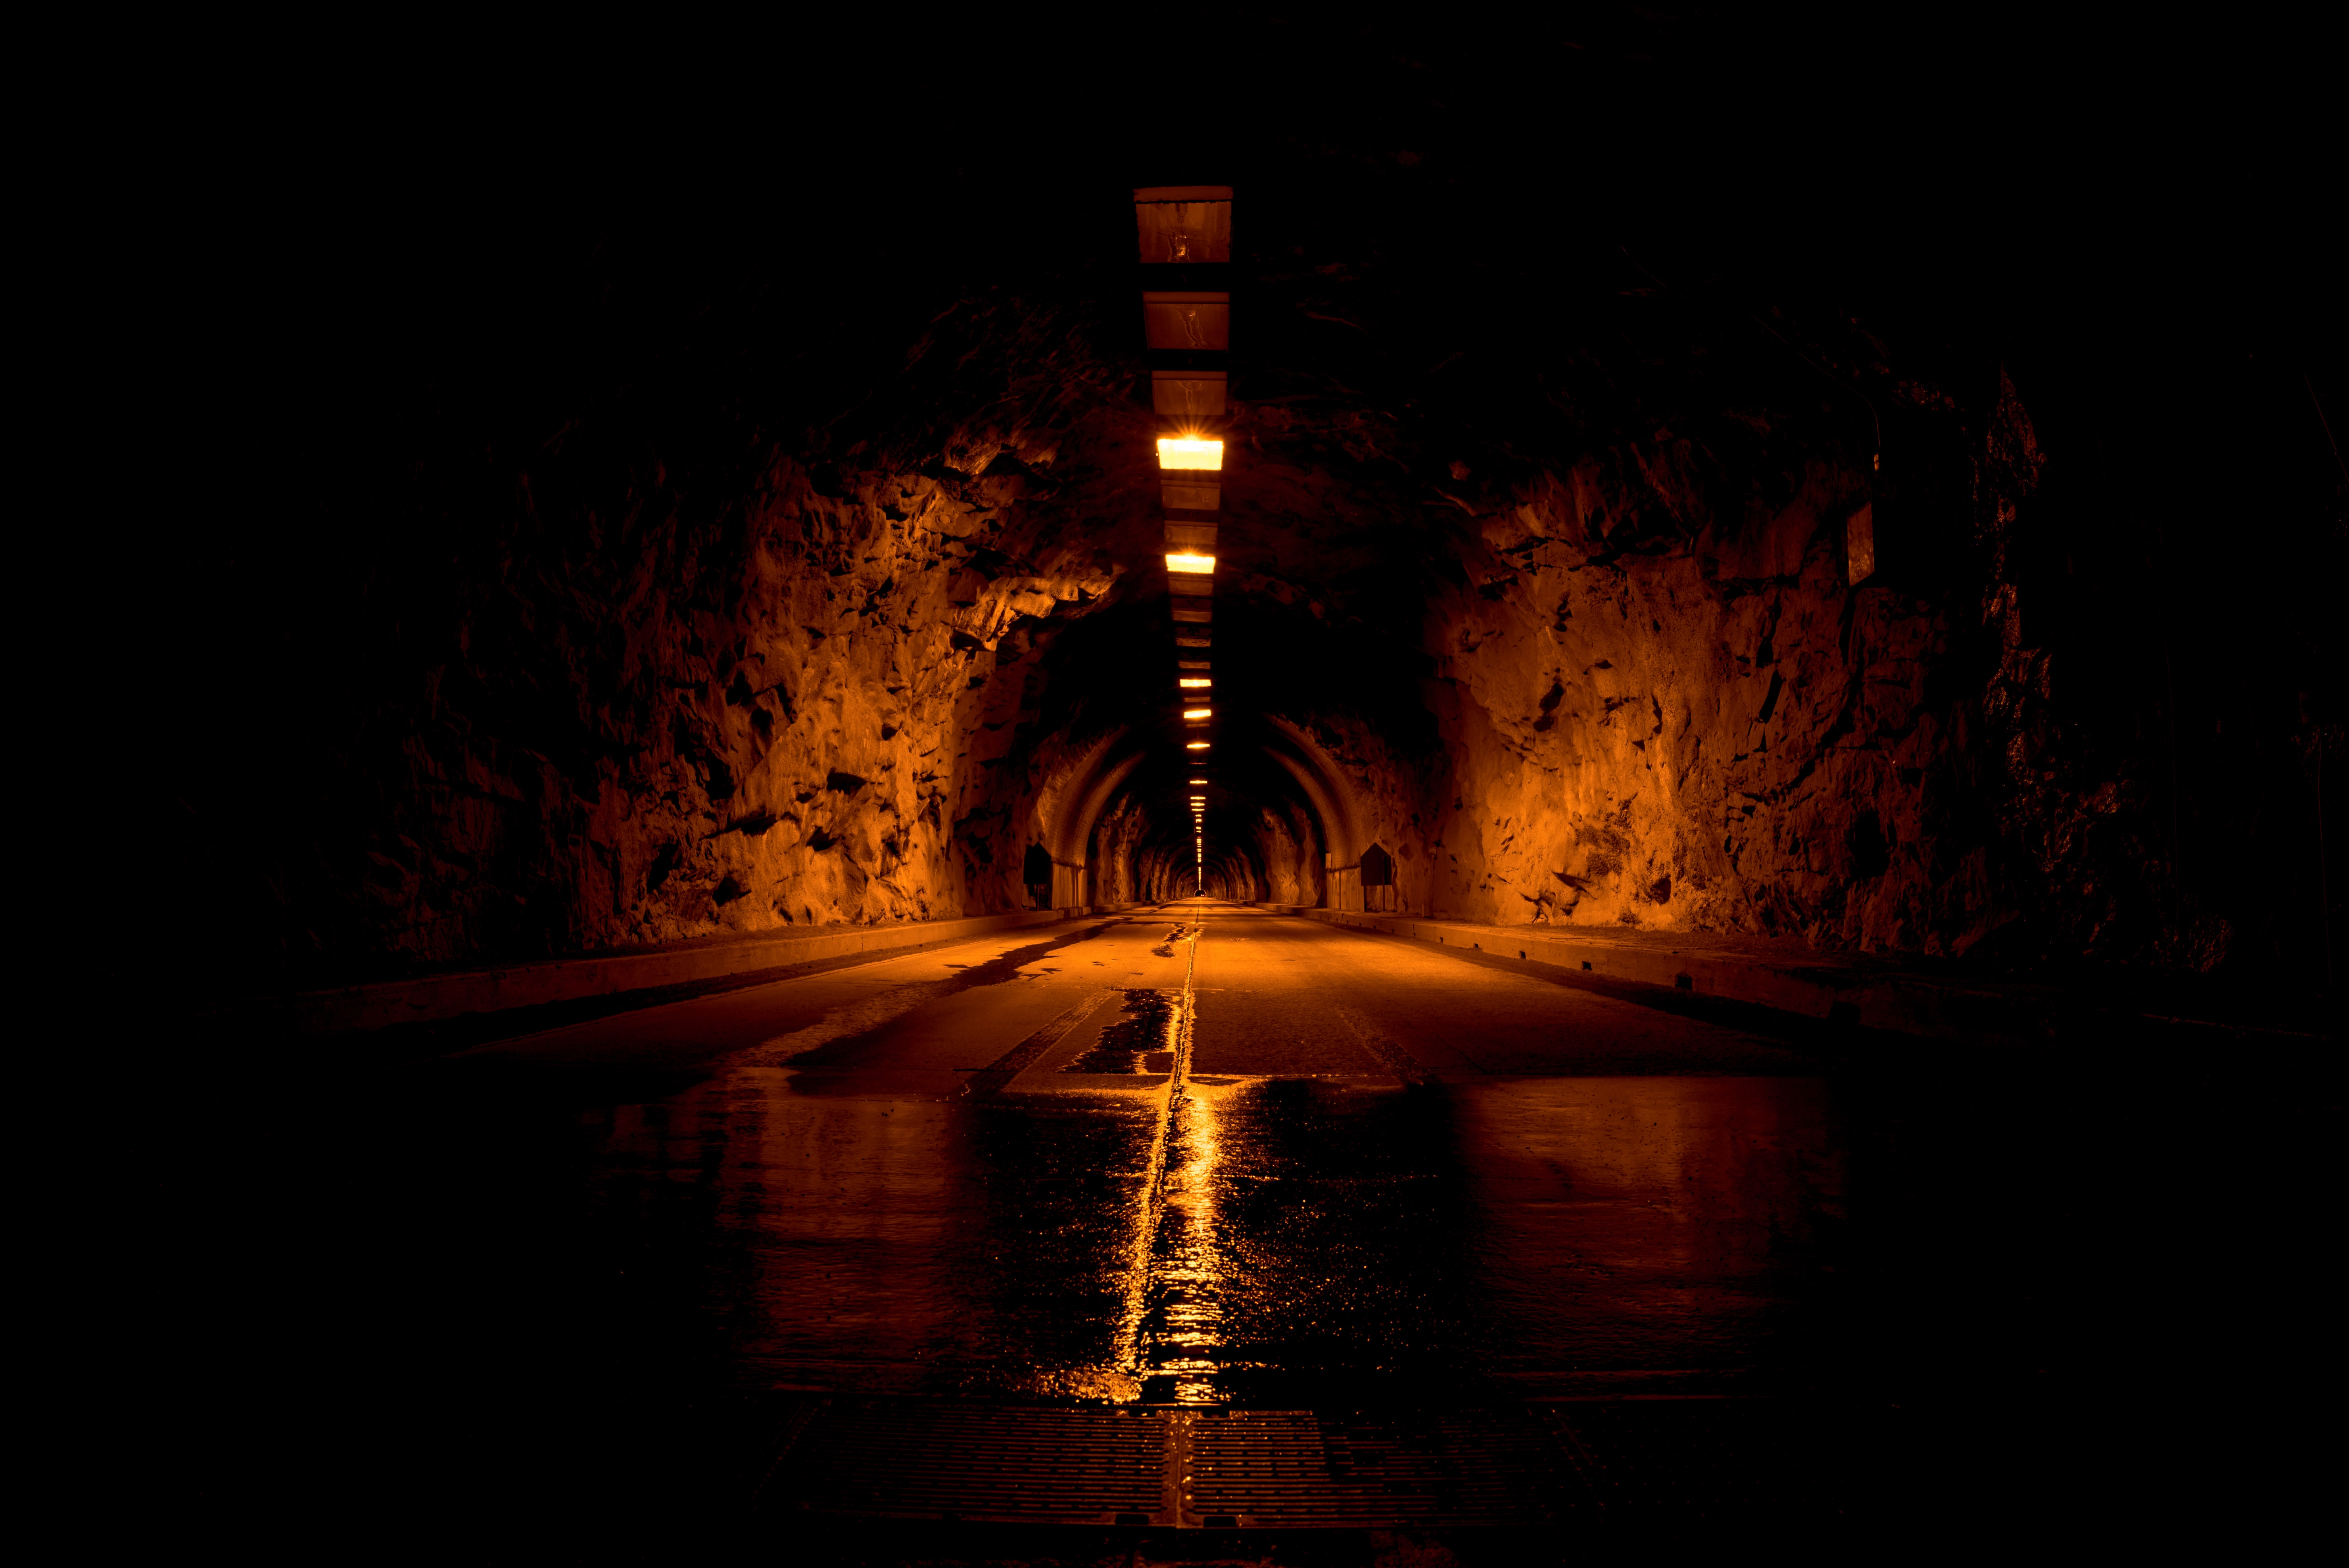 brown tunnel with lights